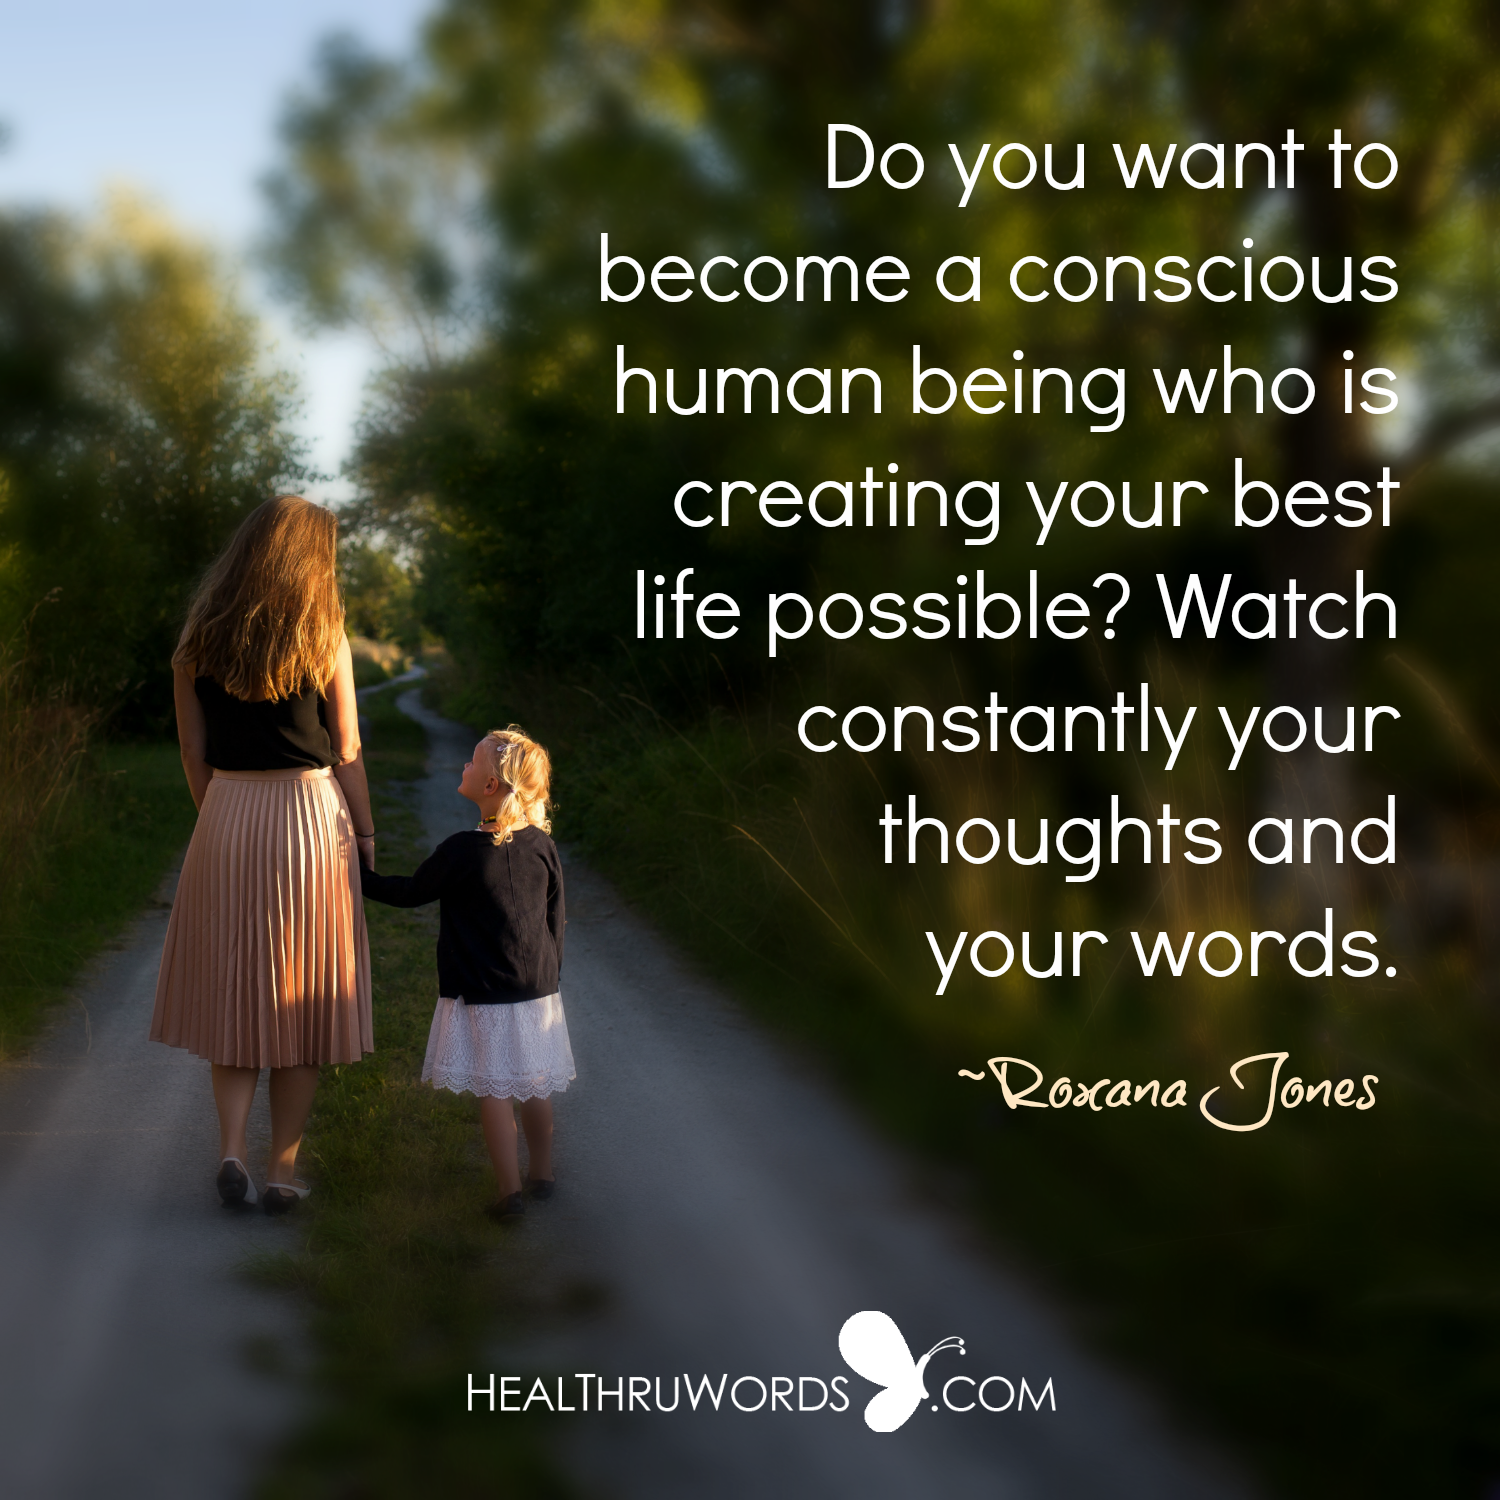 Inspirational Image: Thought and Word